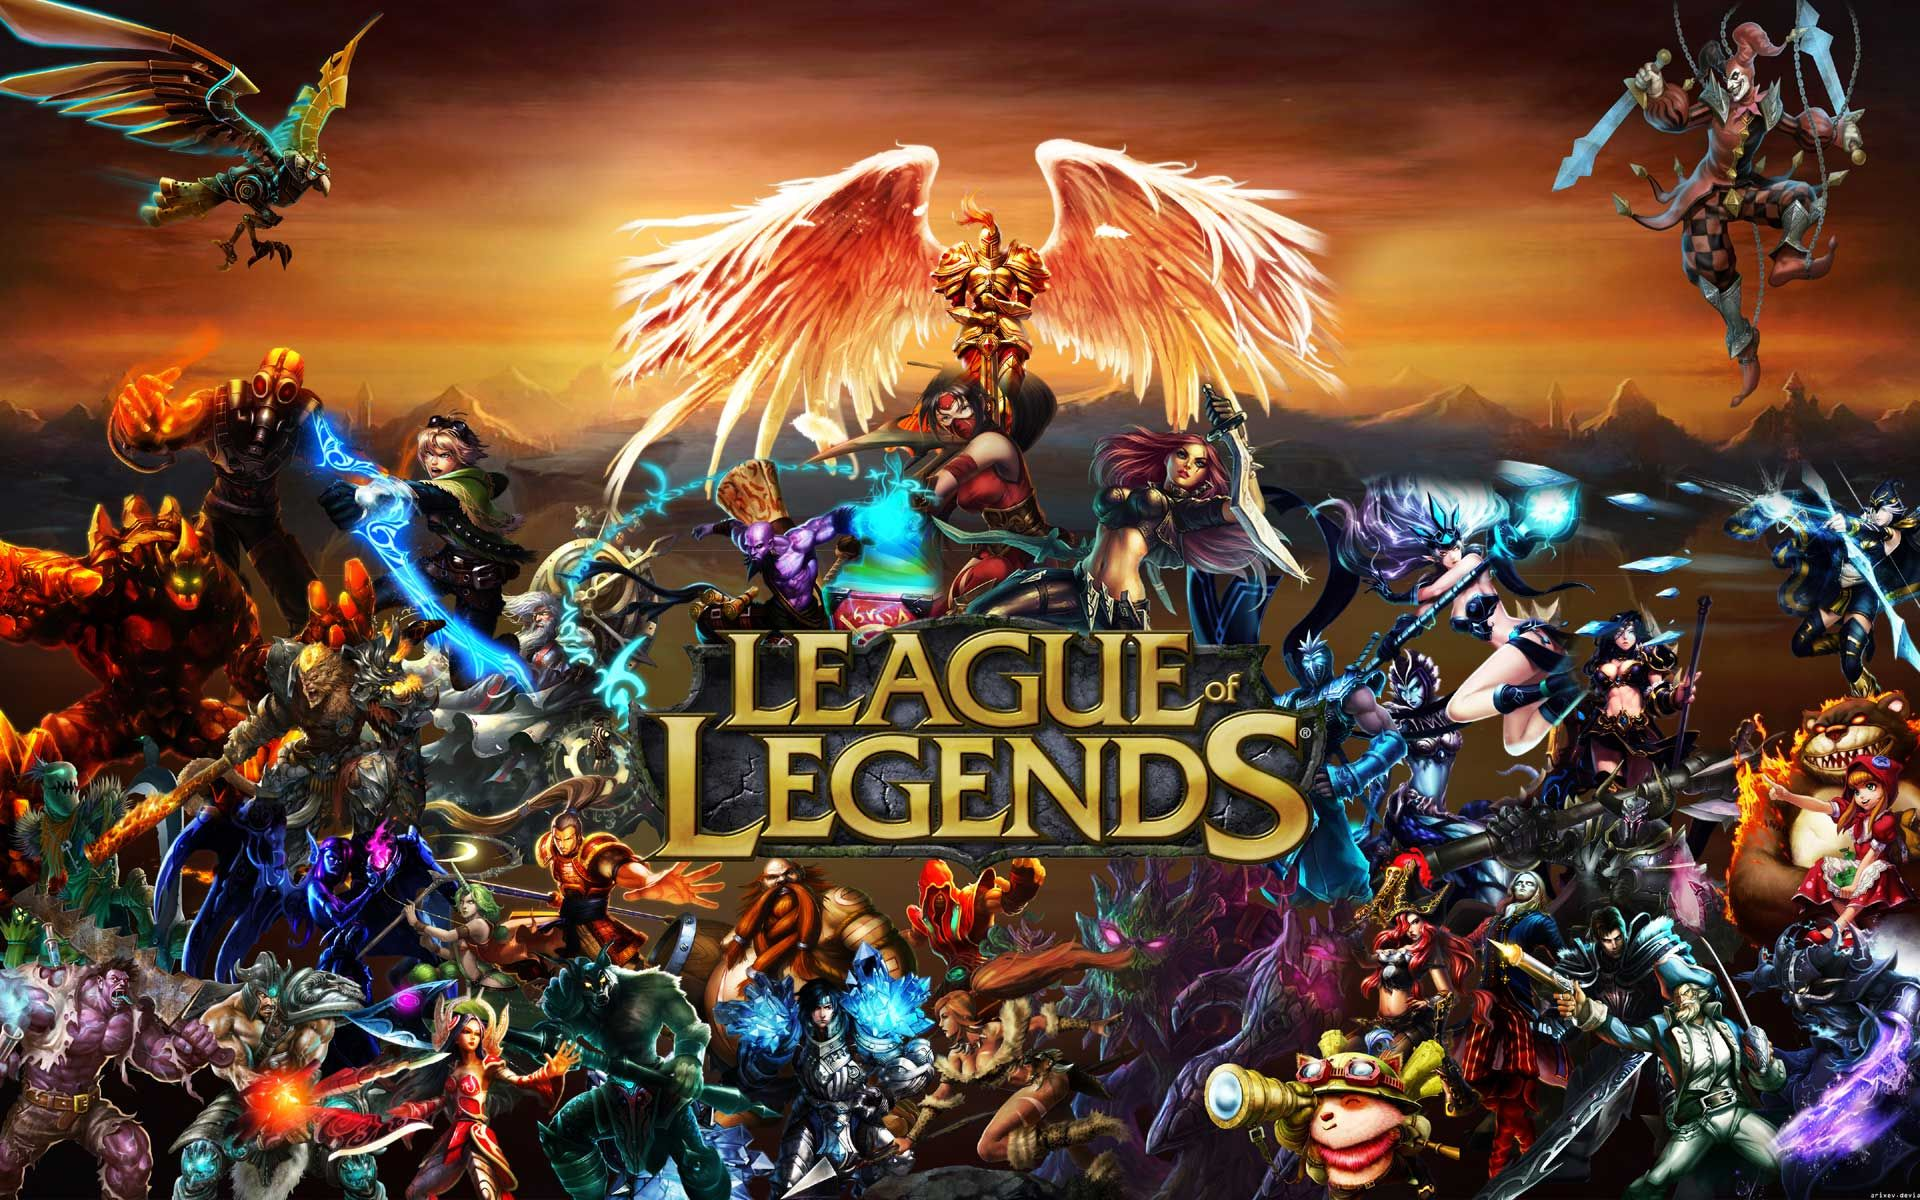 Thailand's top game: League of Legends Image